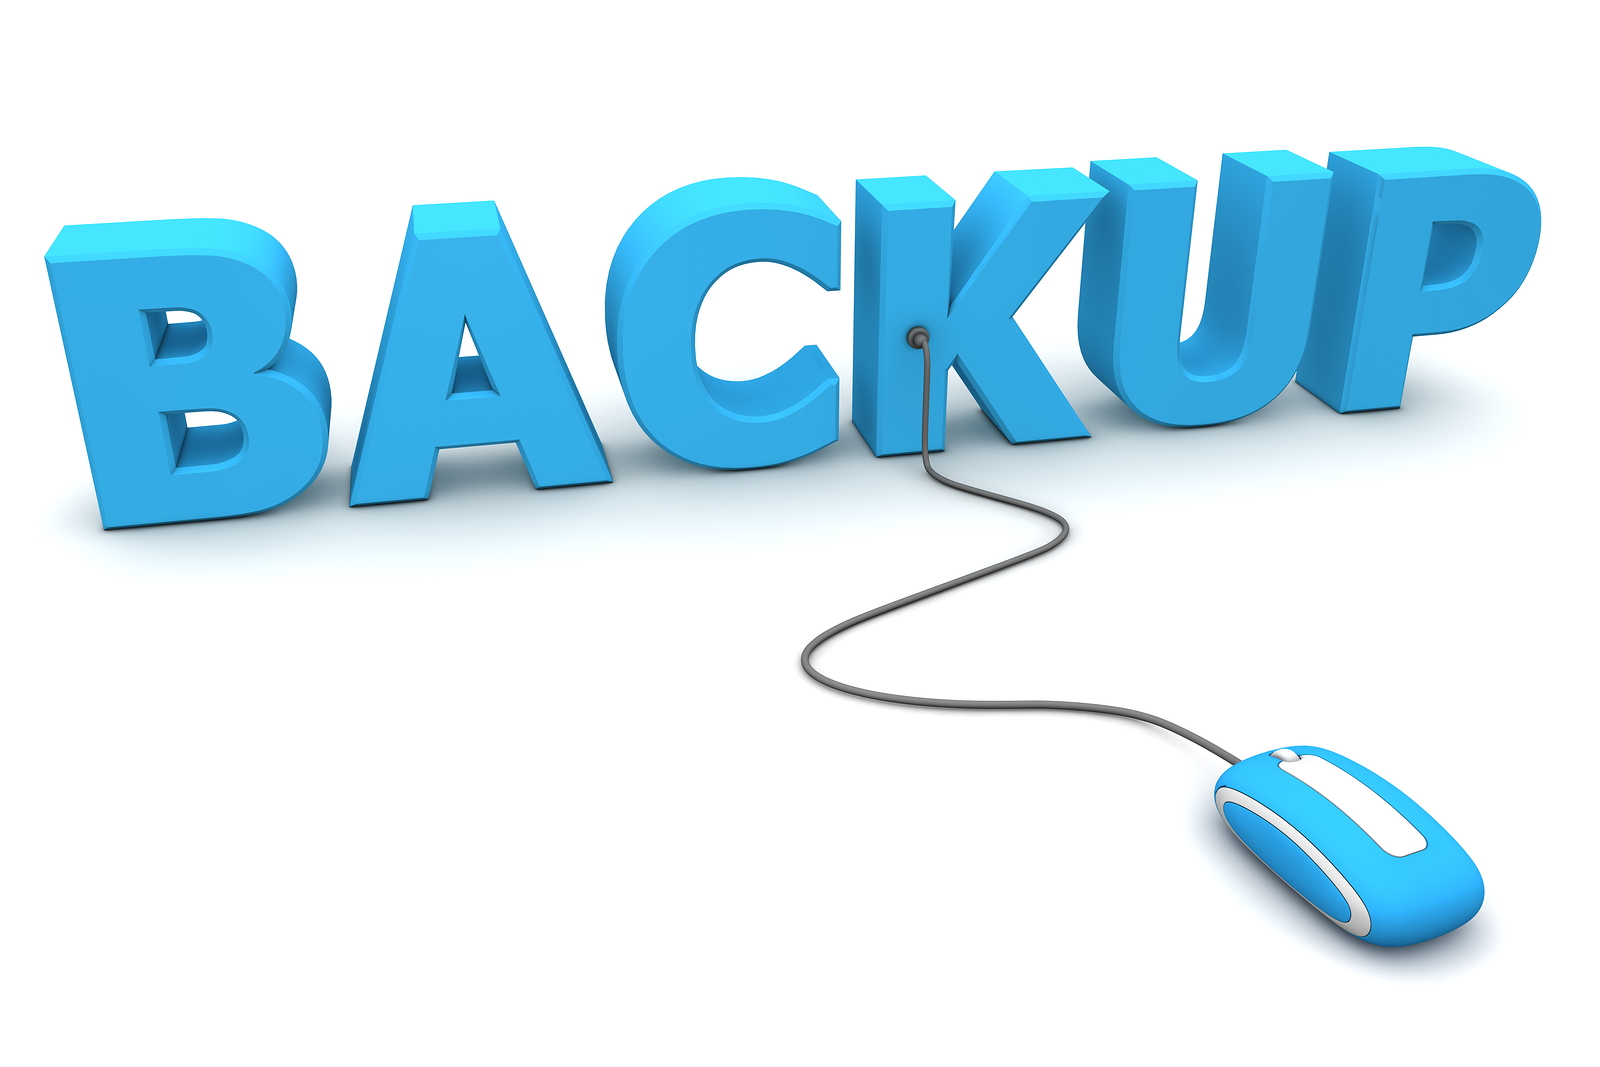 bigstock-Browse-The-Blue-Backup-Blue-180